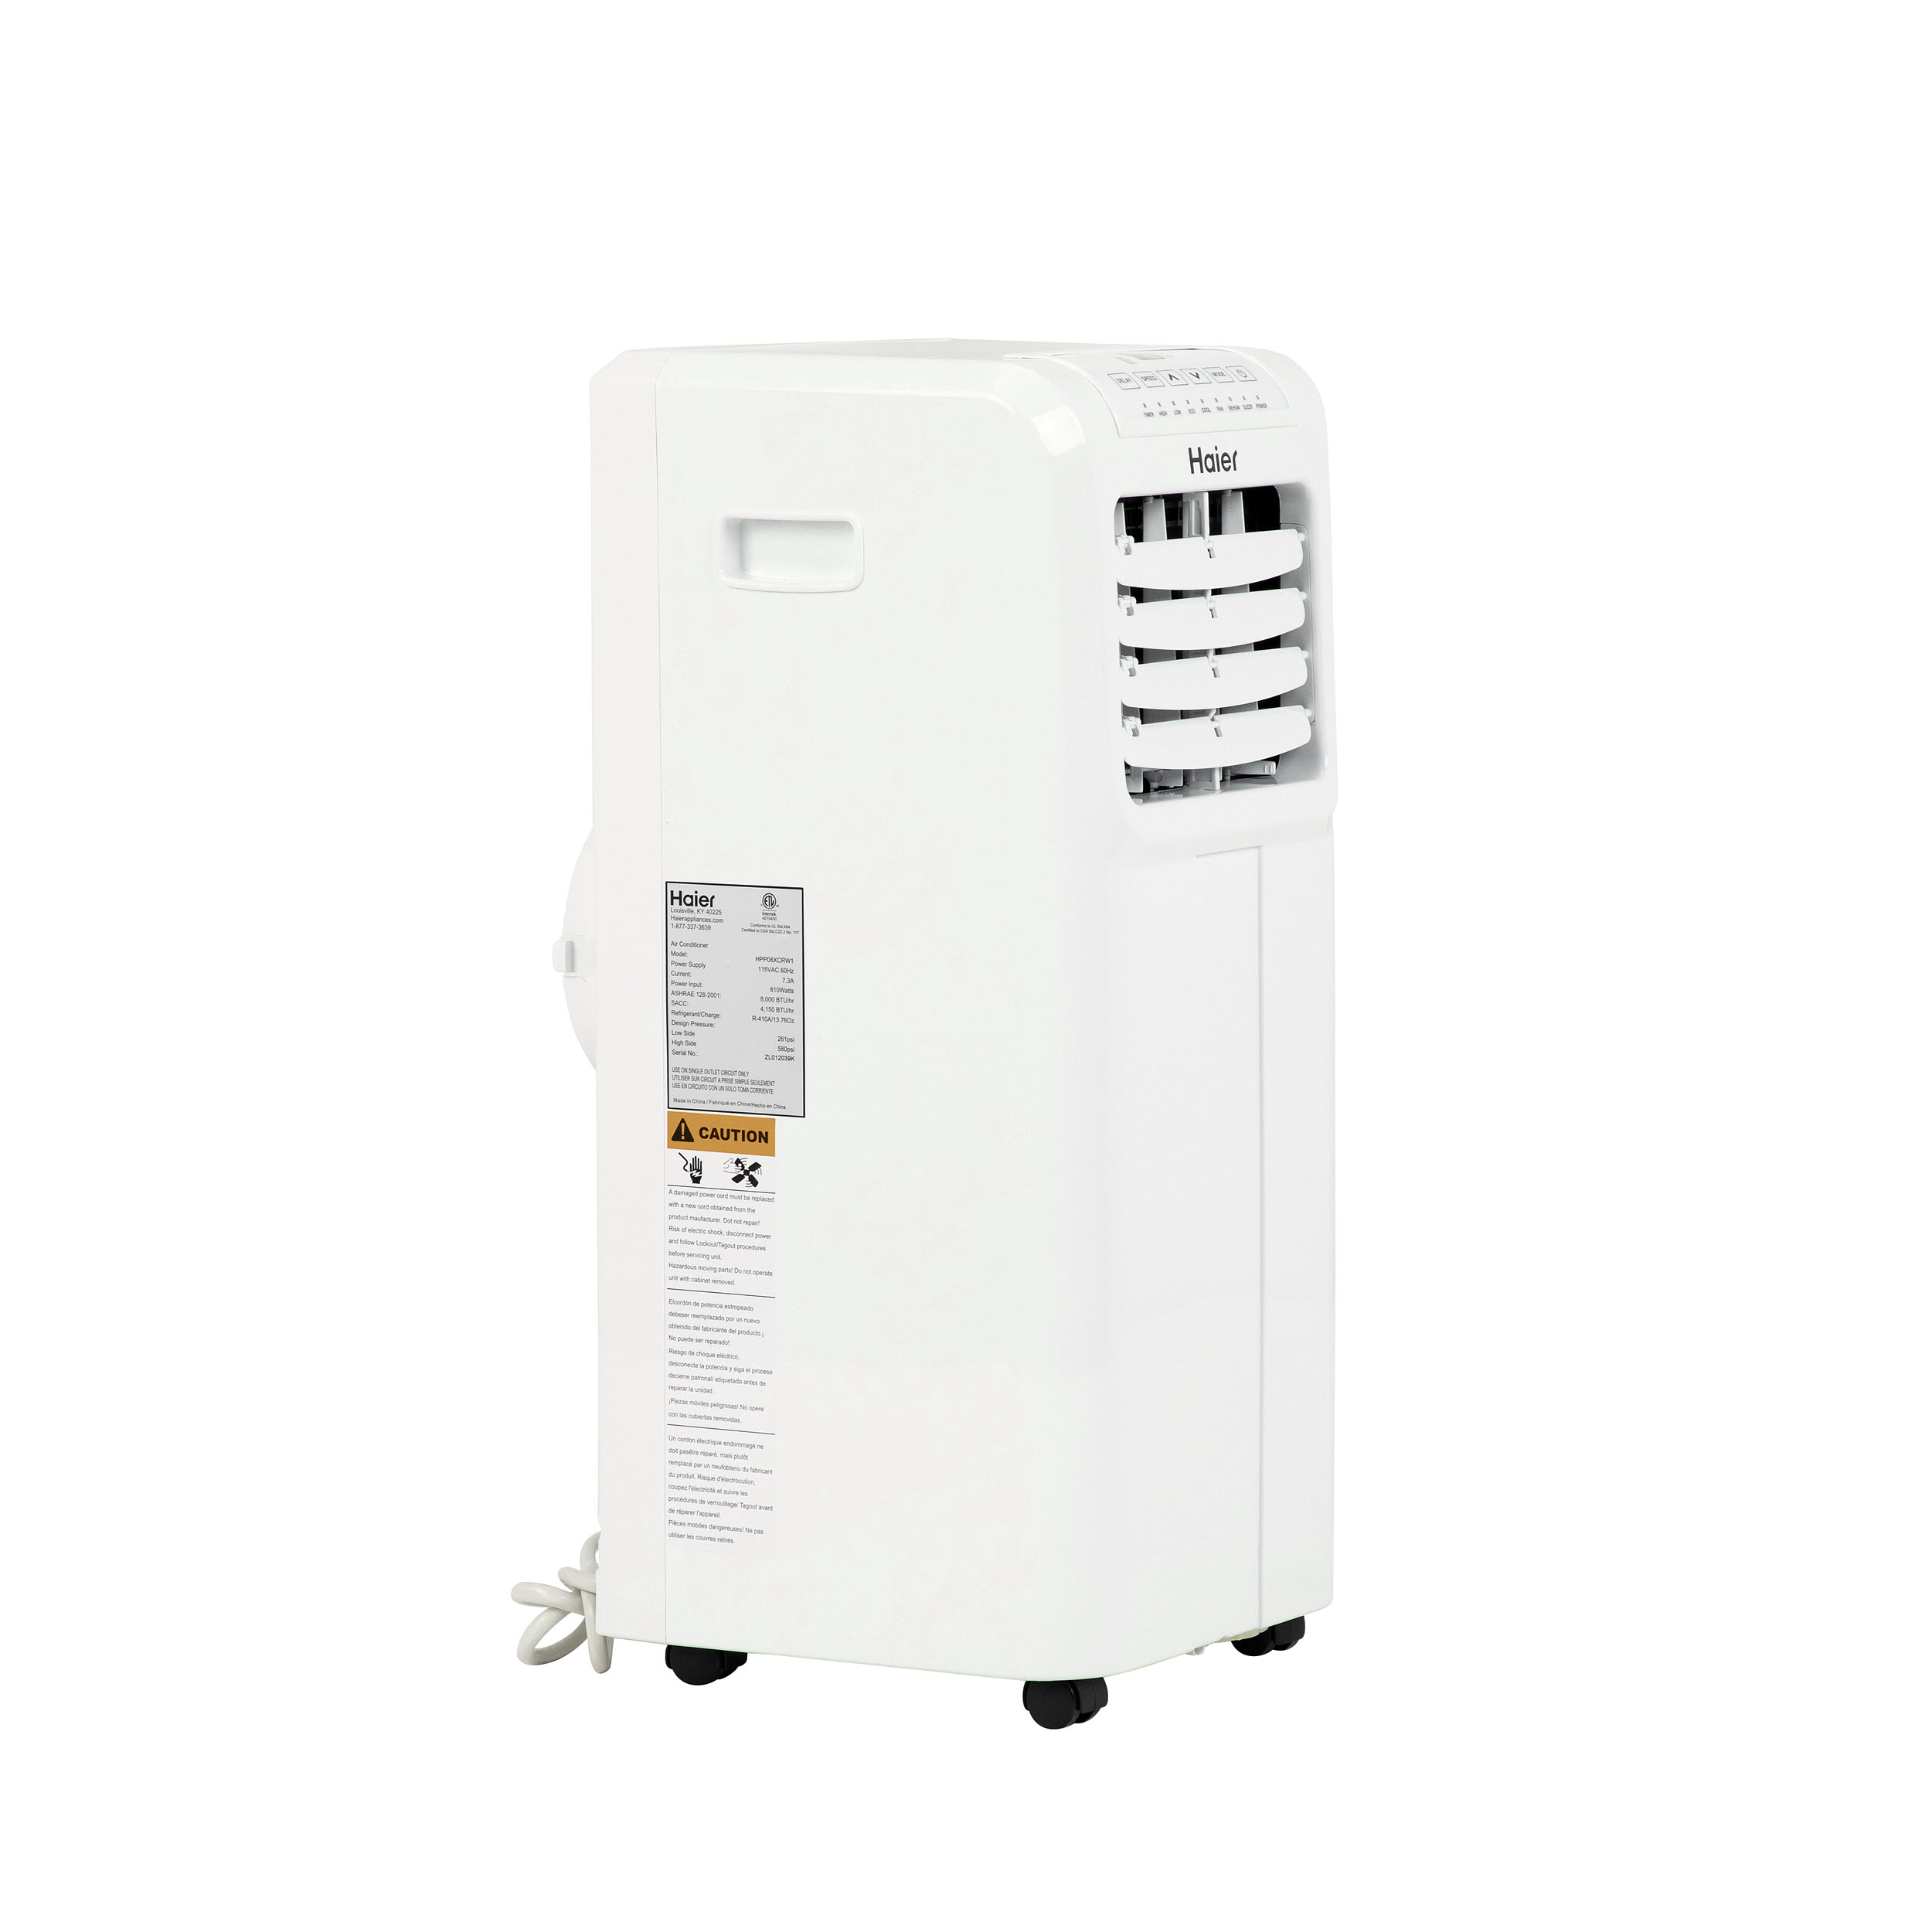 Haier - HPP08XCR - Portable Air Conditioner | Hawkins & Sons